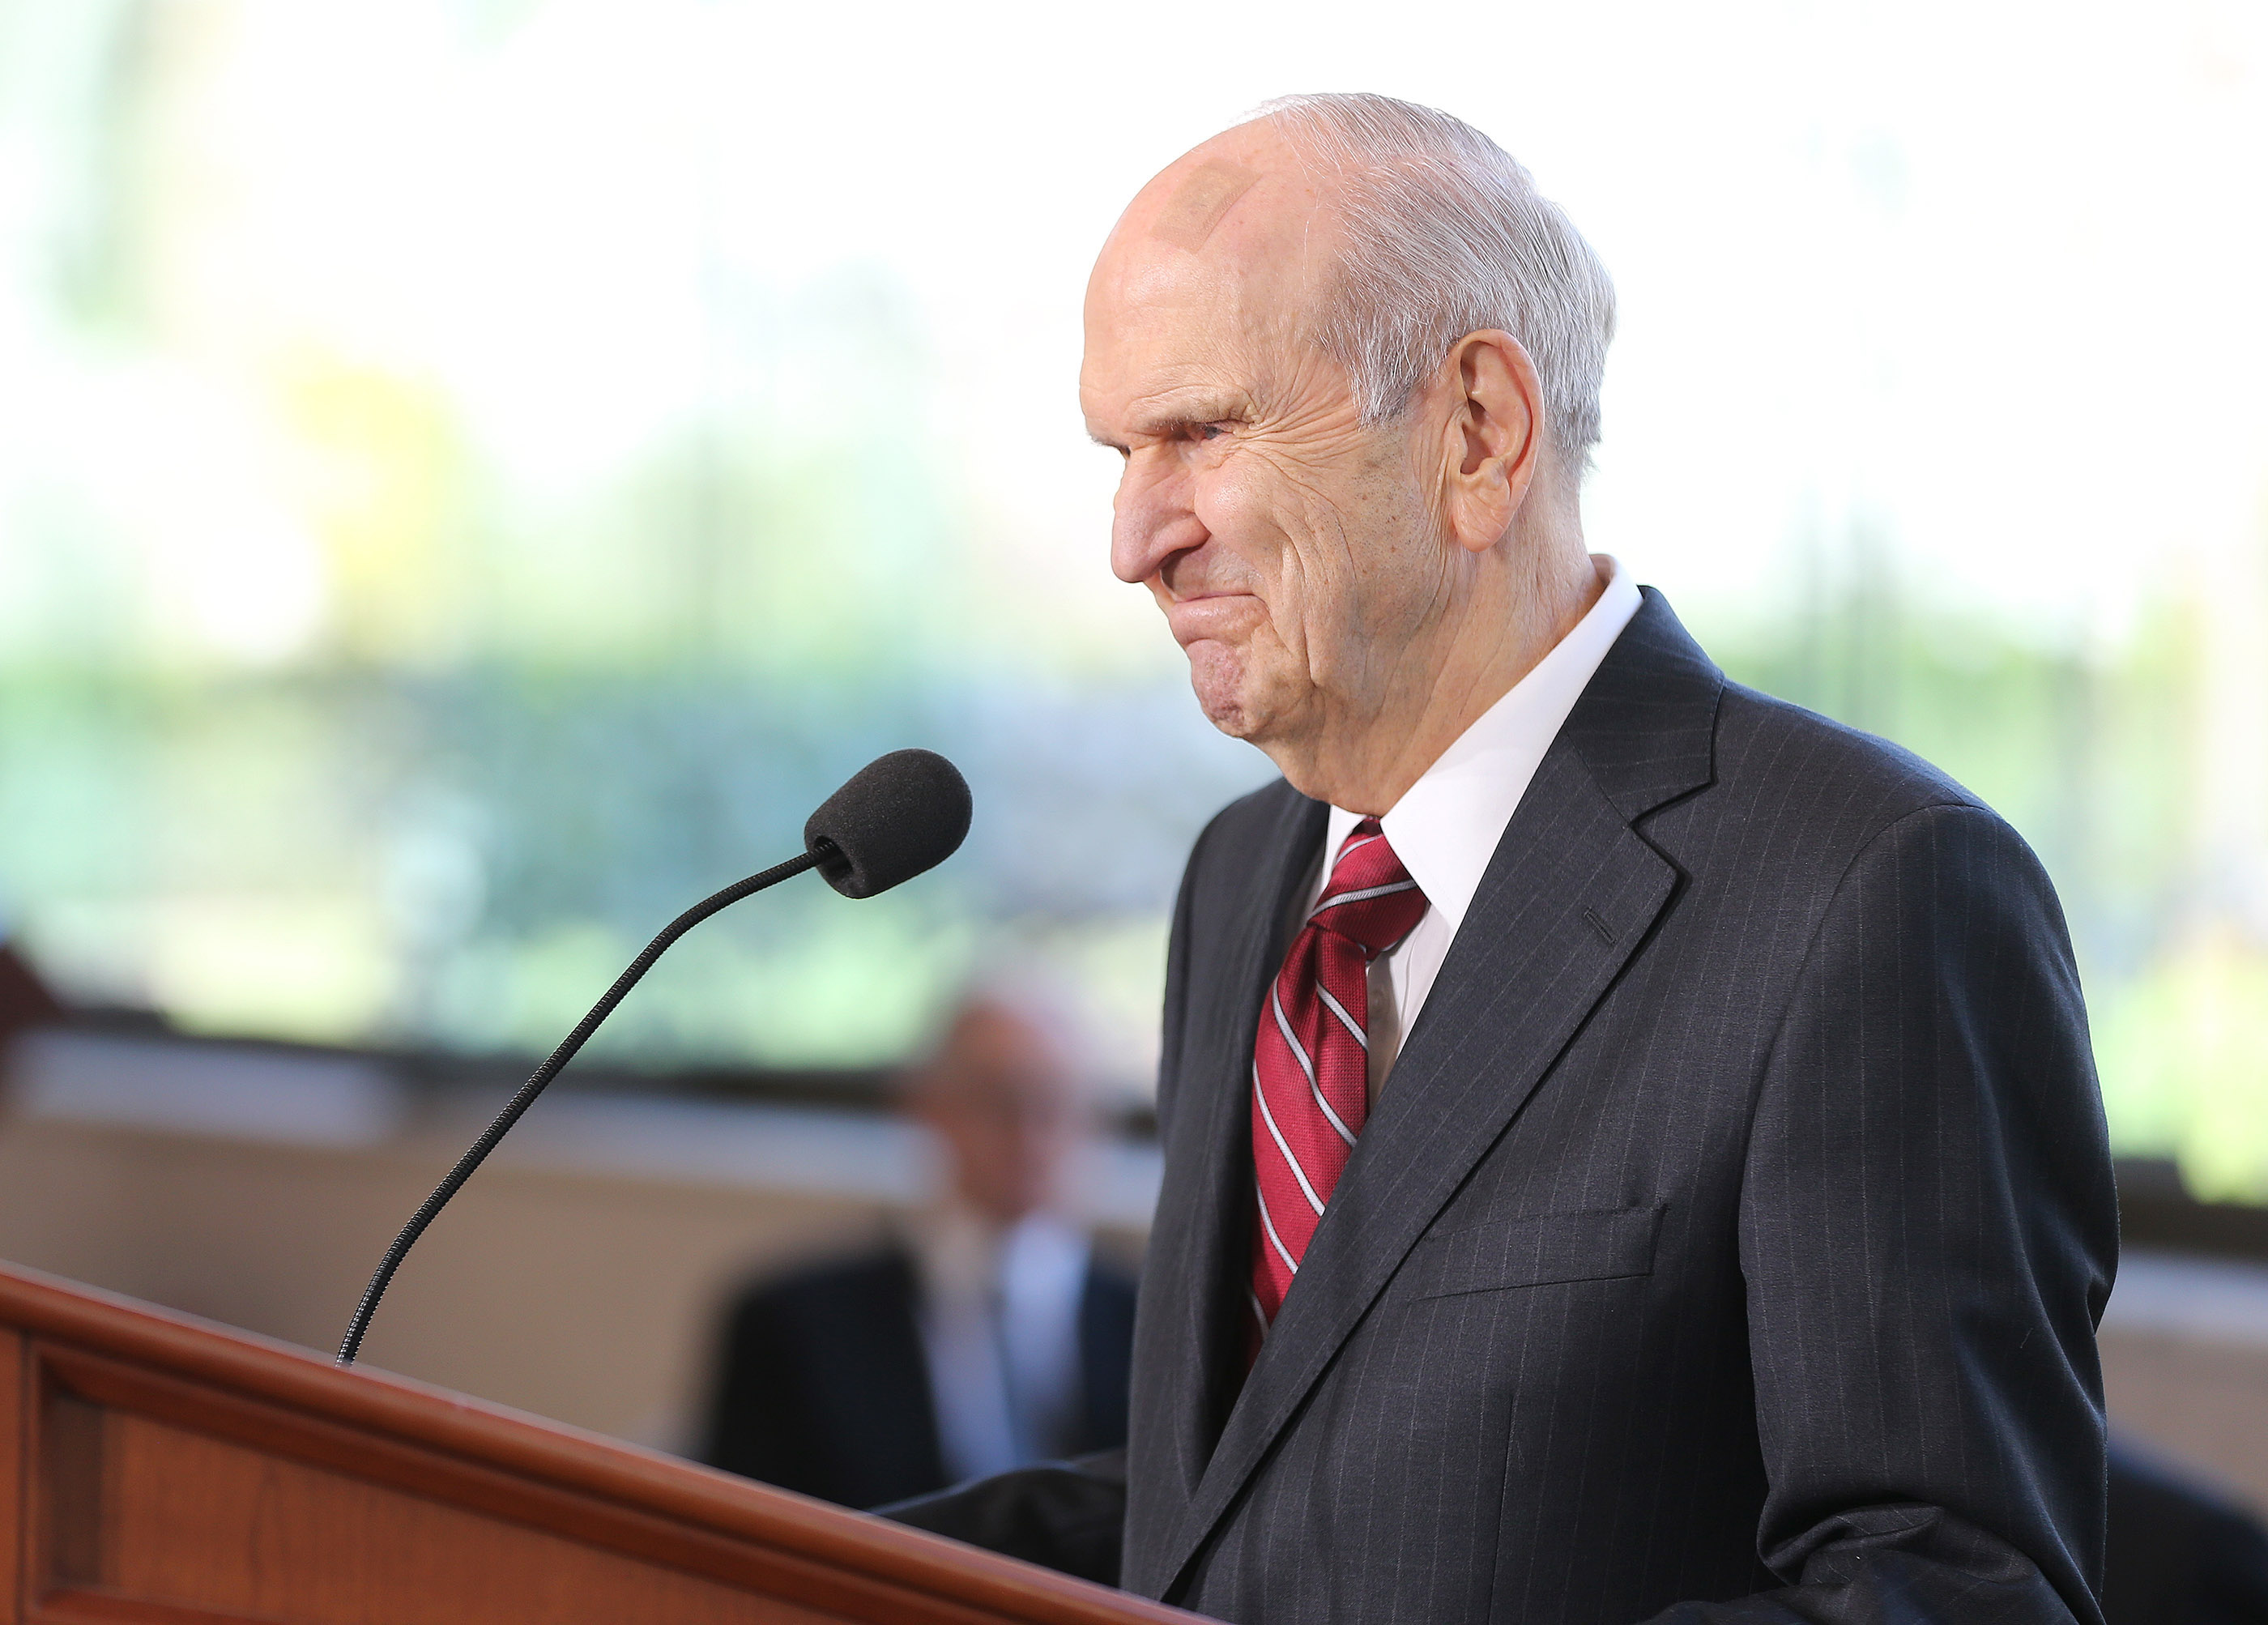 President Russell M. Nelson of The Church of Jesus Christ of Latter-day Saints speaks during a press conference in Salt Lake City on Friday, April 19, 2019 about renovations to the Salt Lake Temple and grounds.